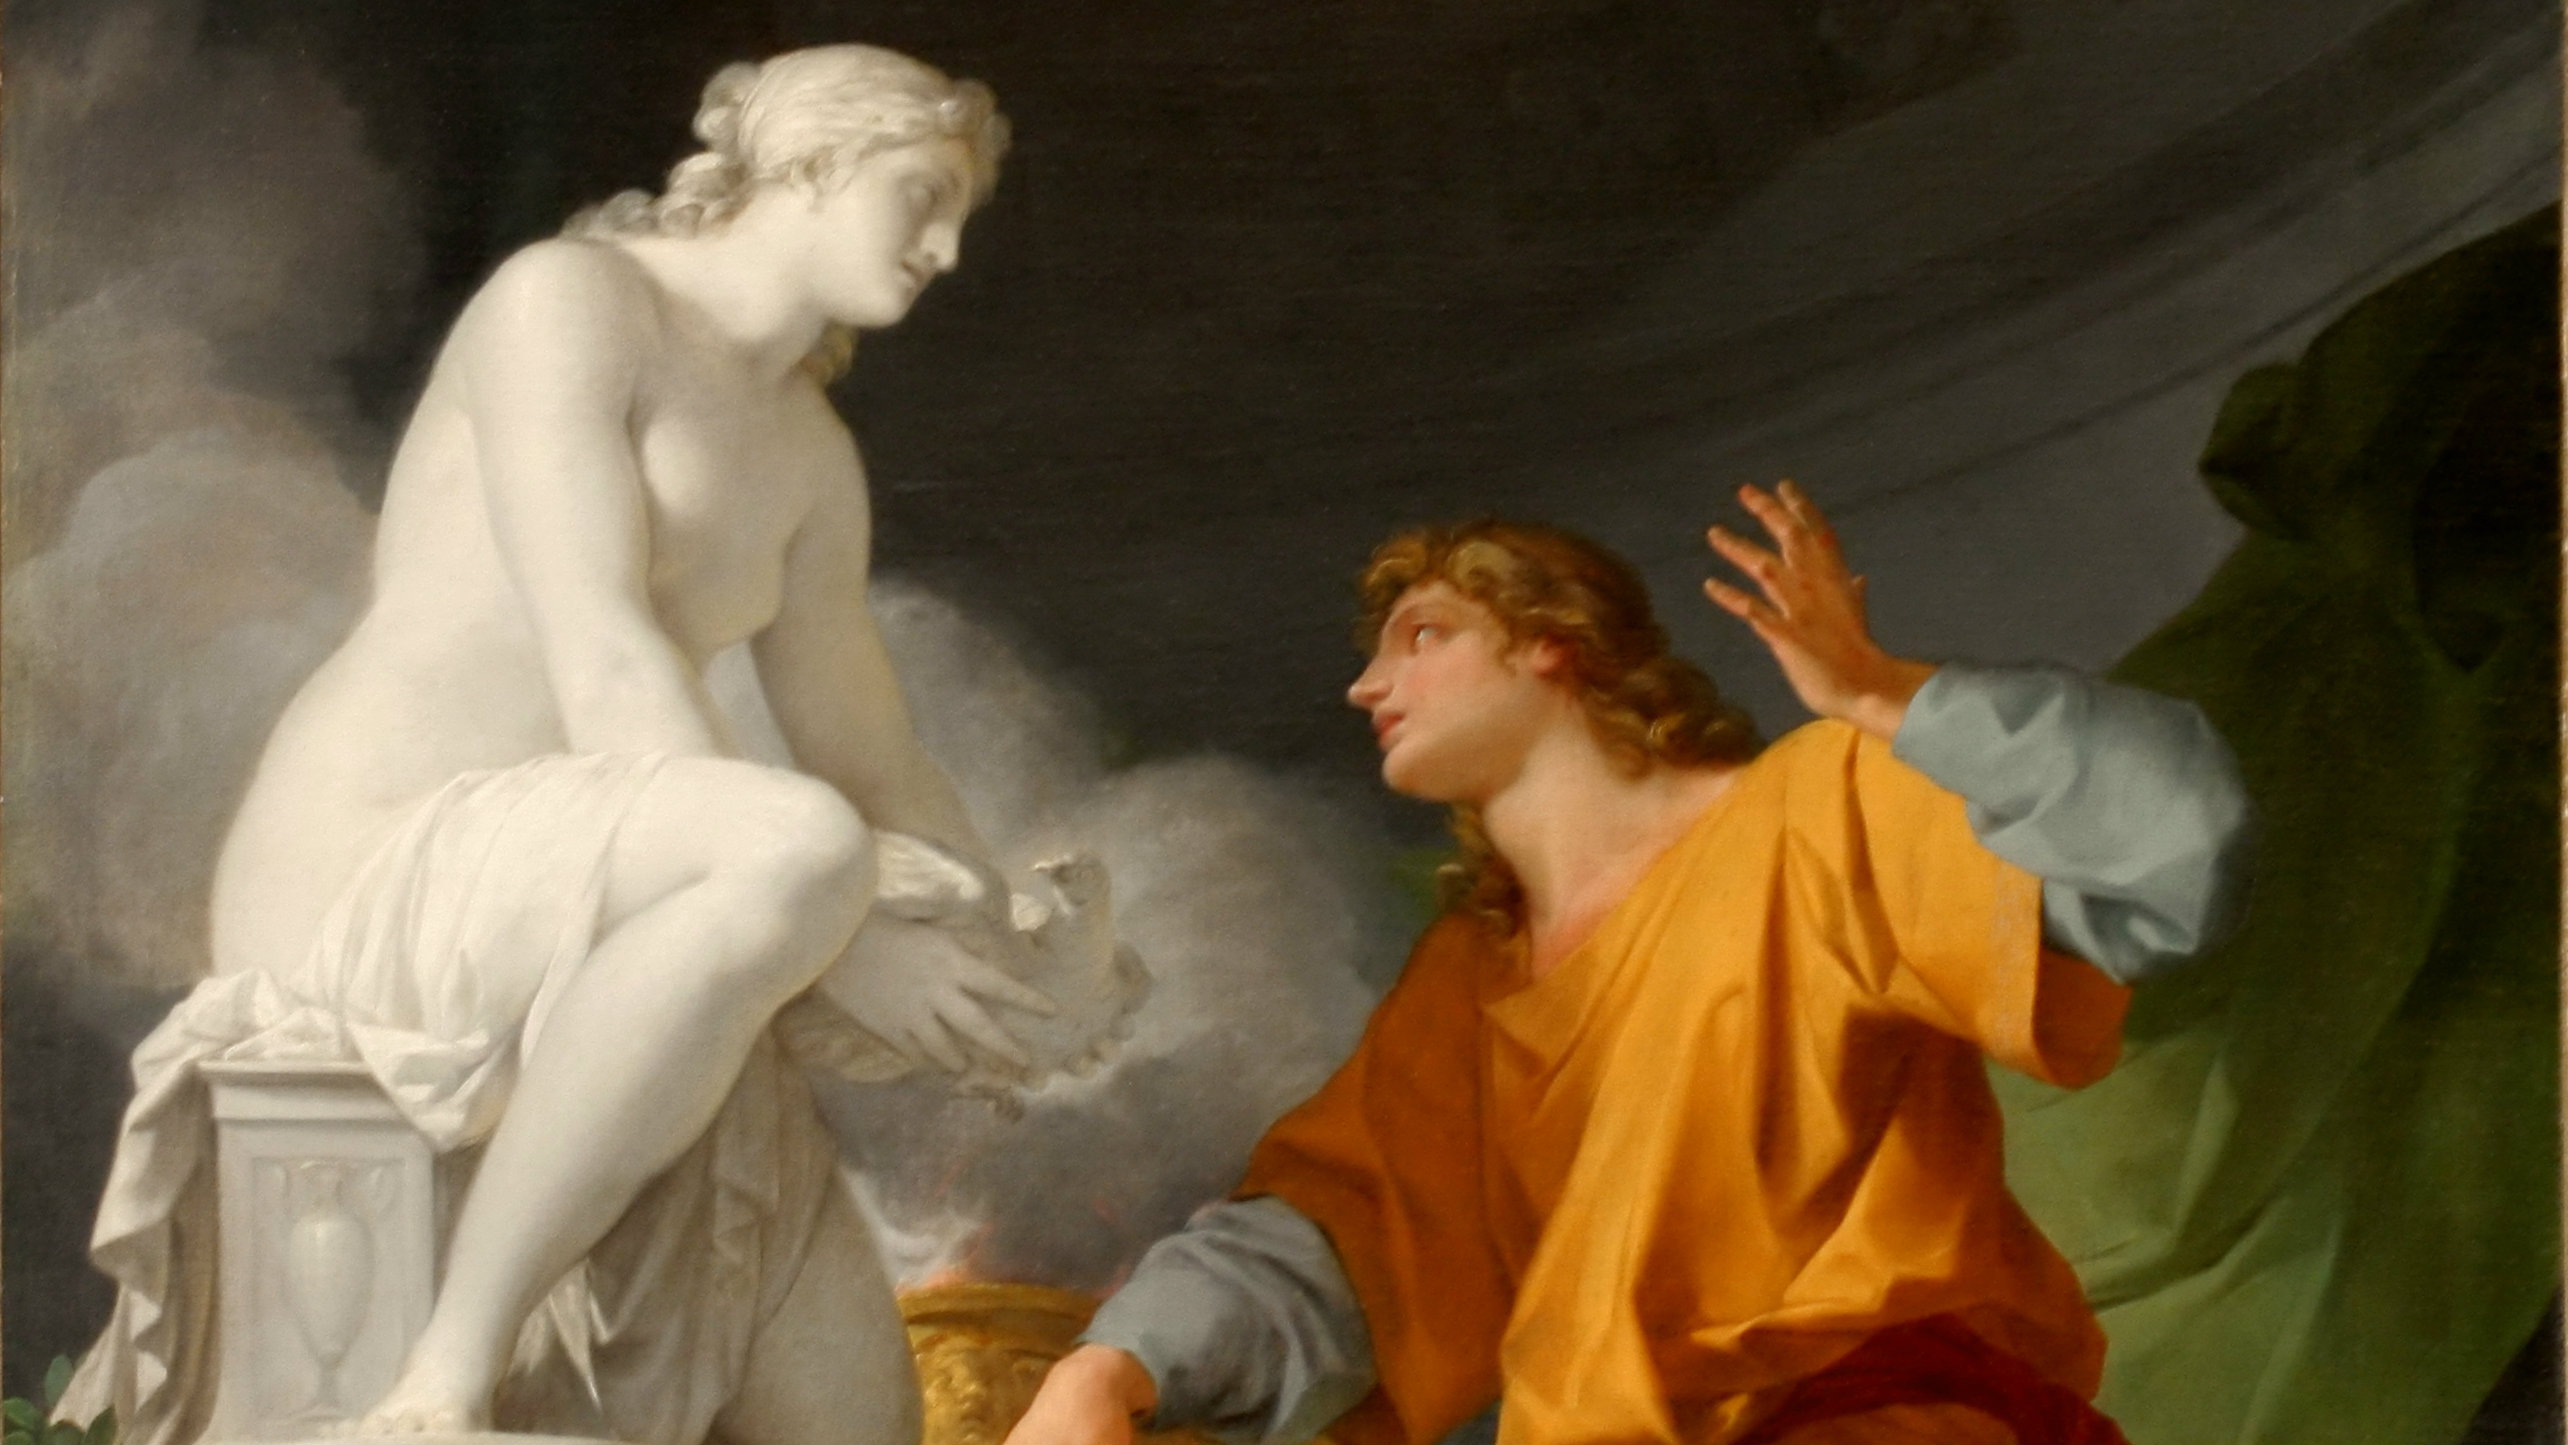 Pygmalion Praying Venus to Animate His Statue, by Jean-Baptiste Regnault in 1786